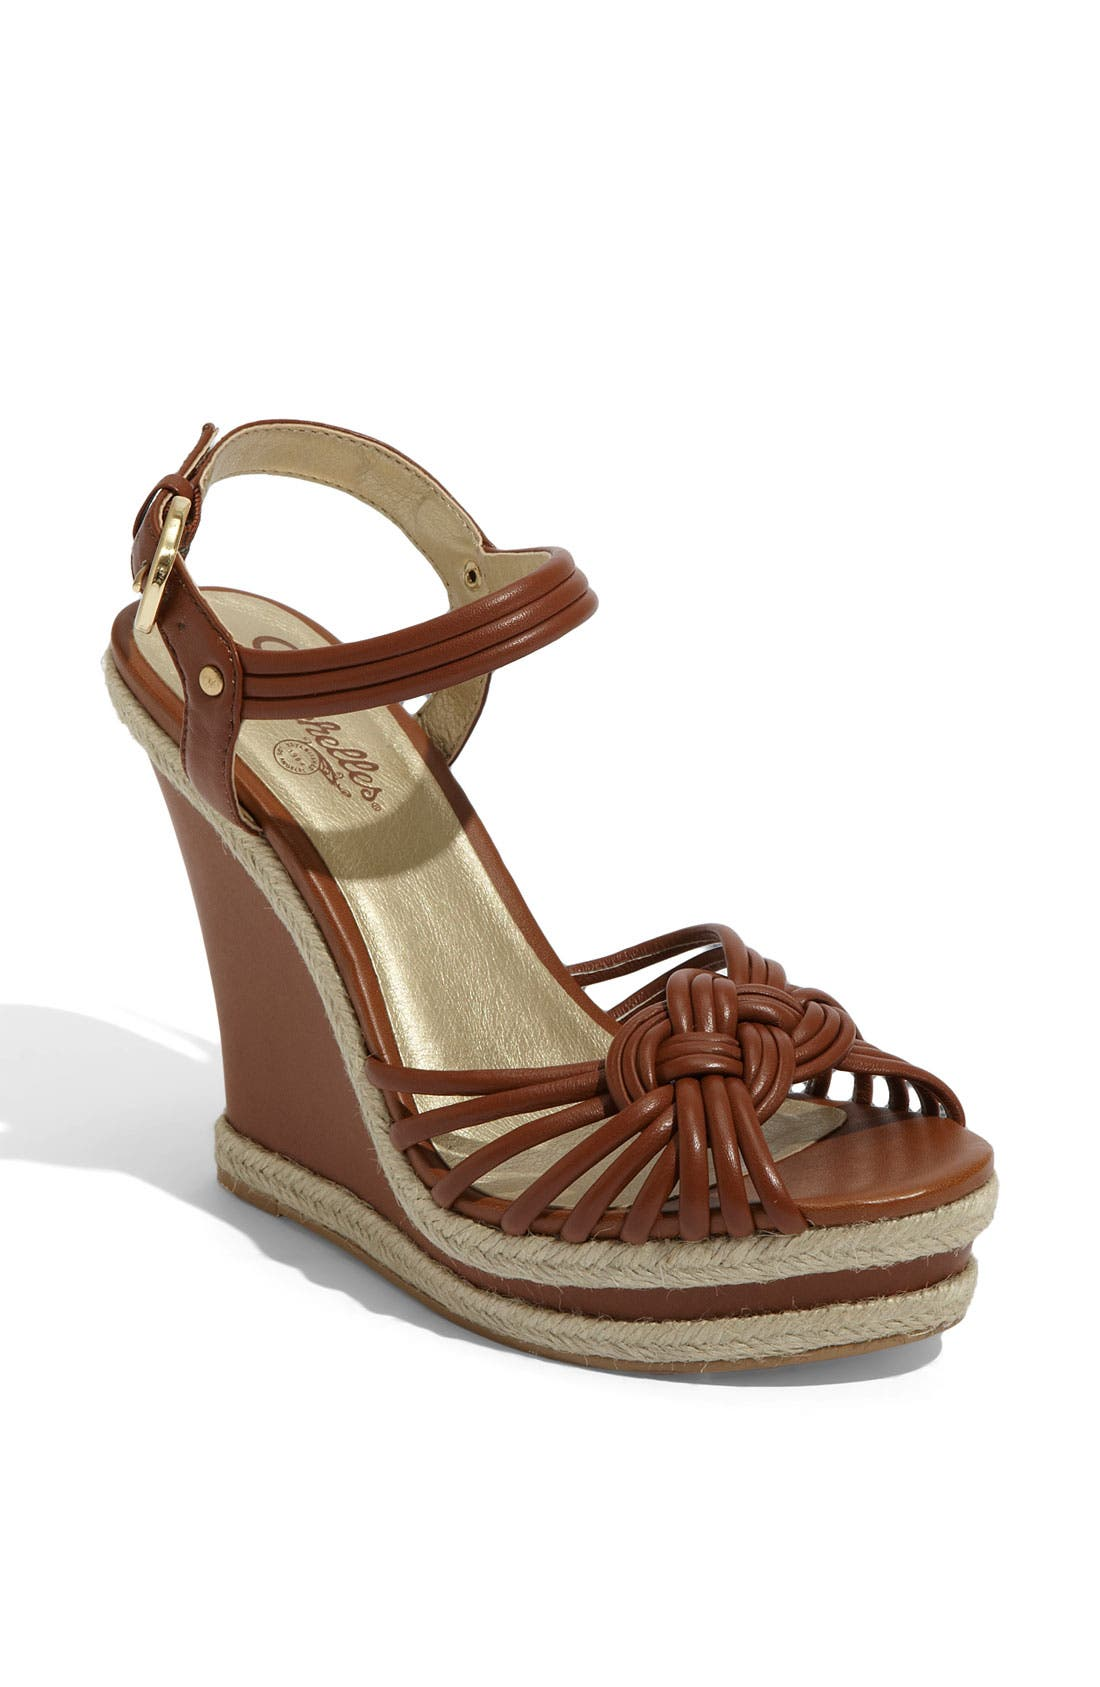 Alternate Image 1 Selected - Seychelles 'Harlow' Espadrille Sandal